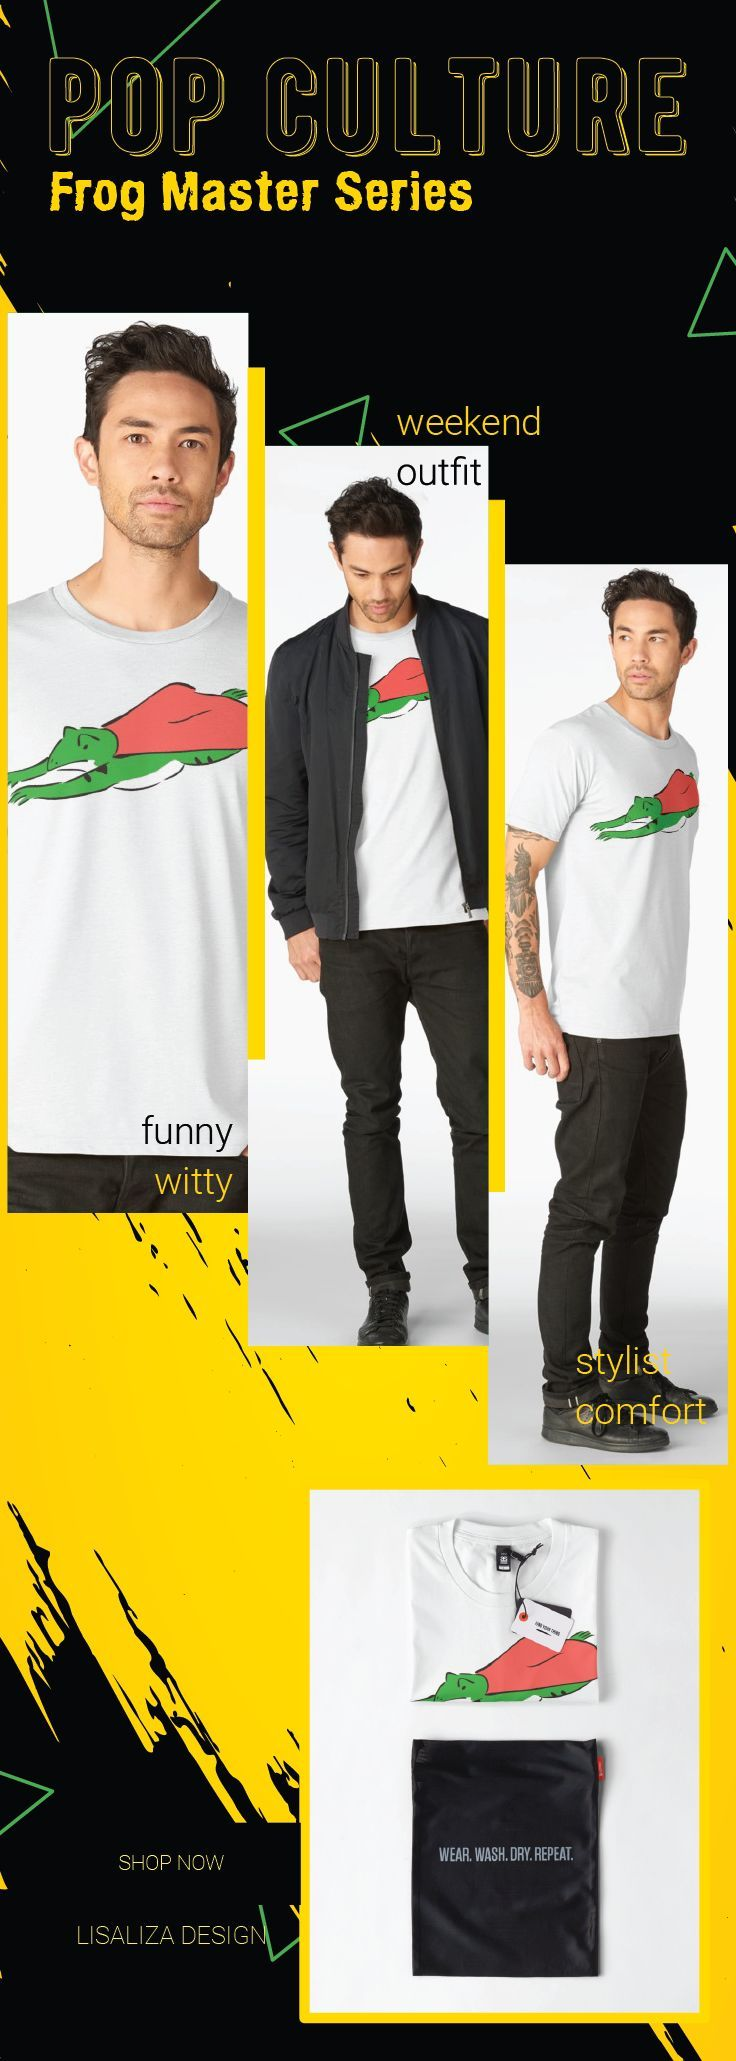 Men's Premium T-Shirt Frog Master - SuperFrog byLisaLiza Redbubble.   Get one today! Men's & Women's Sizes available.   Check out our full catalog for tons of funny ,witty & cool pop culture inspired t shirt   #PopCulture #ForTeens #Teens #Cool #Funny #Witty #Gifts #FrogMaster #RedbubbleMen   #Lisaliza #Frog #Redbubble #tumblr #Pet